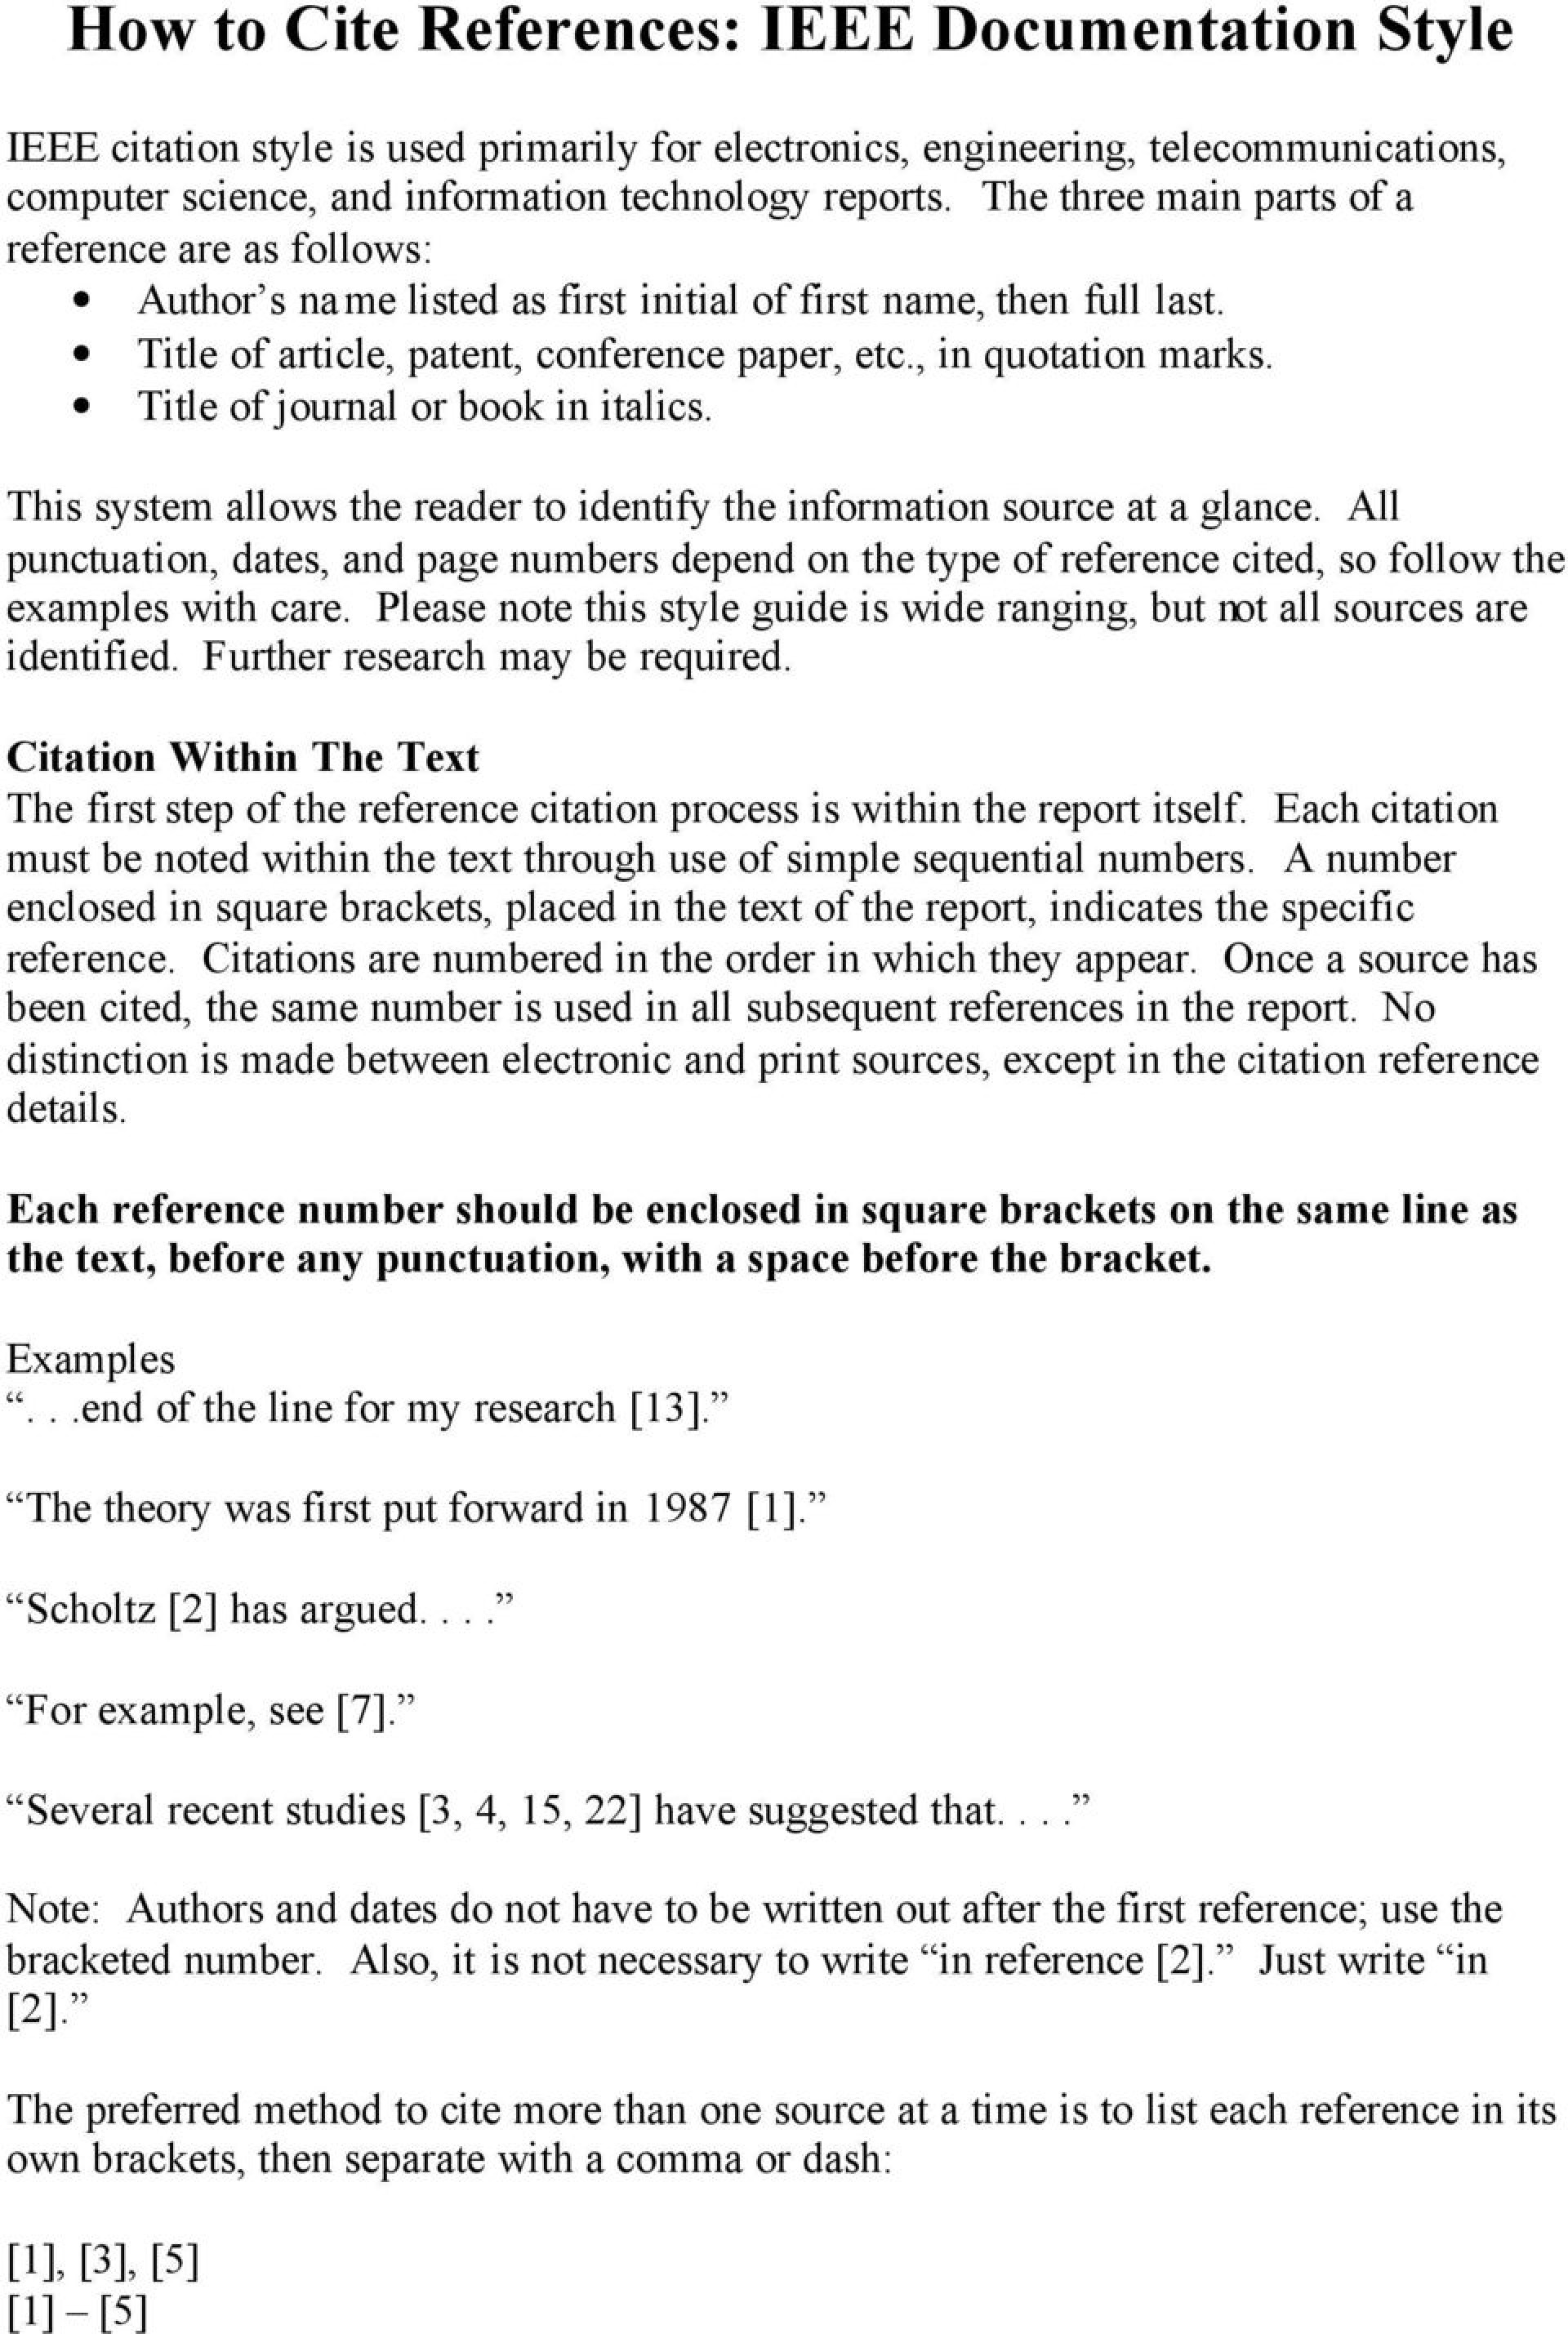 Professional dissertation hypothesis writer site for school